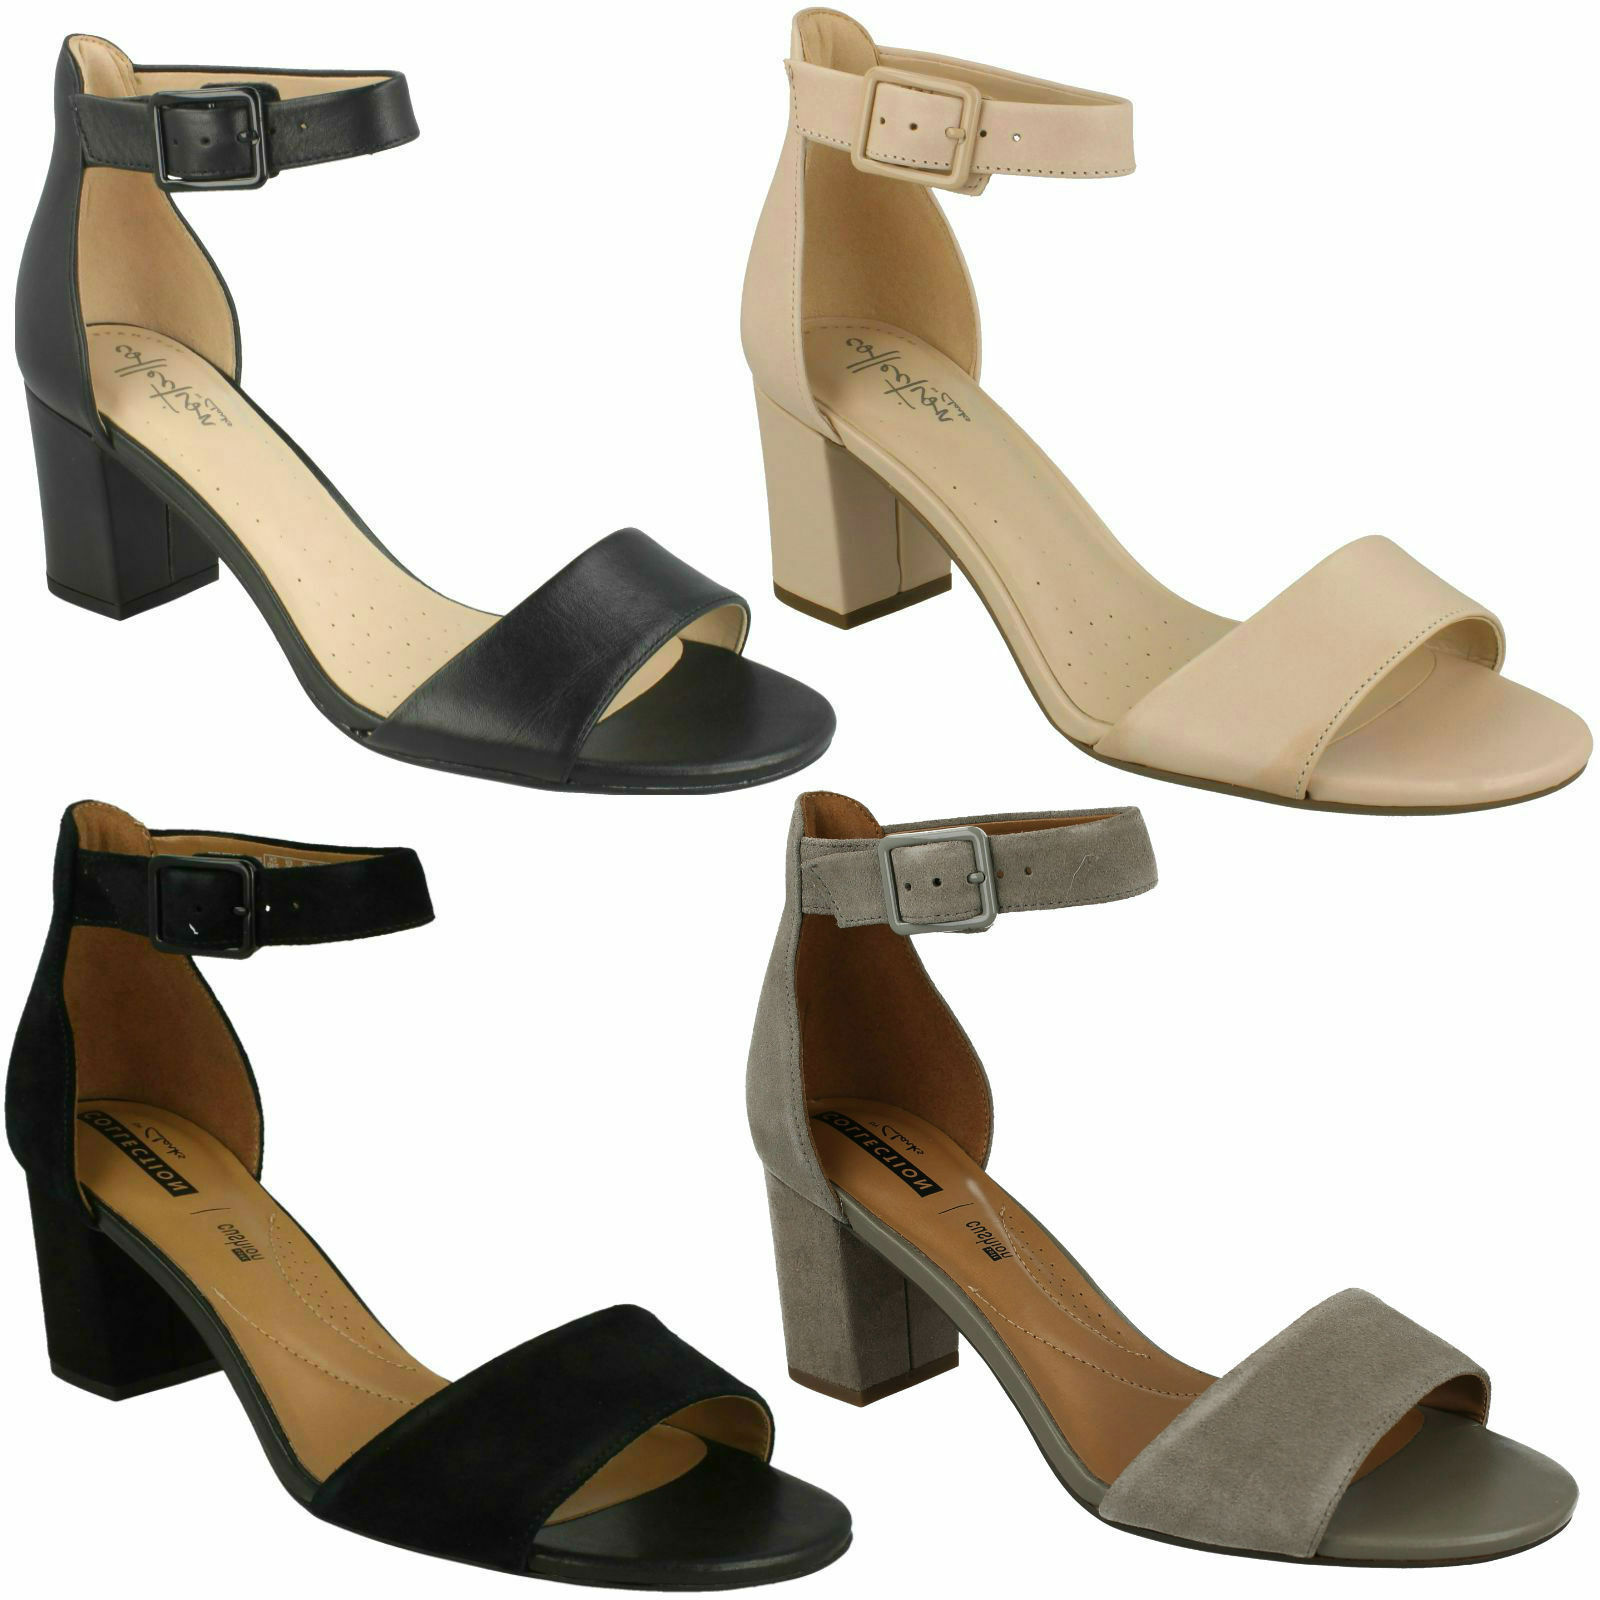 DEVA MAE LADIES CLARKS LEATHER OPEN TOE ANKLE STRAP BUCKLE HEELED SANDALS SIZE